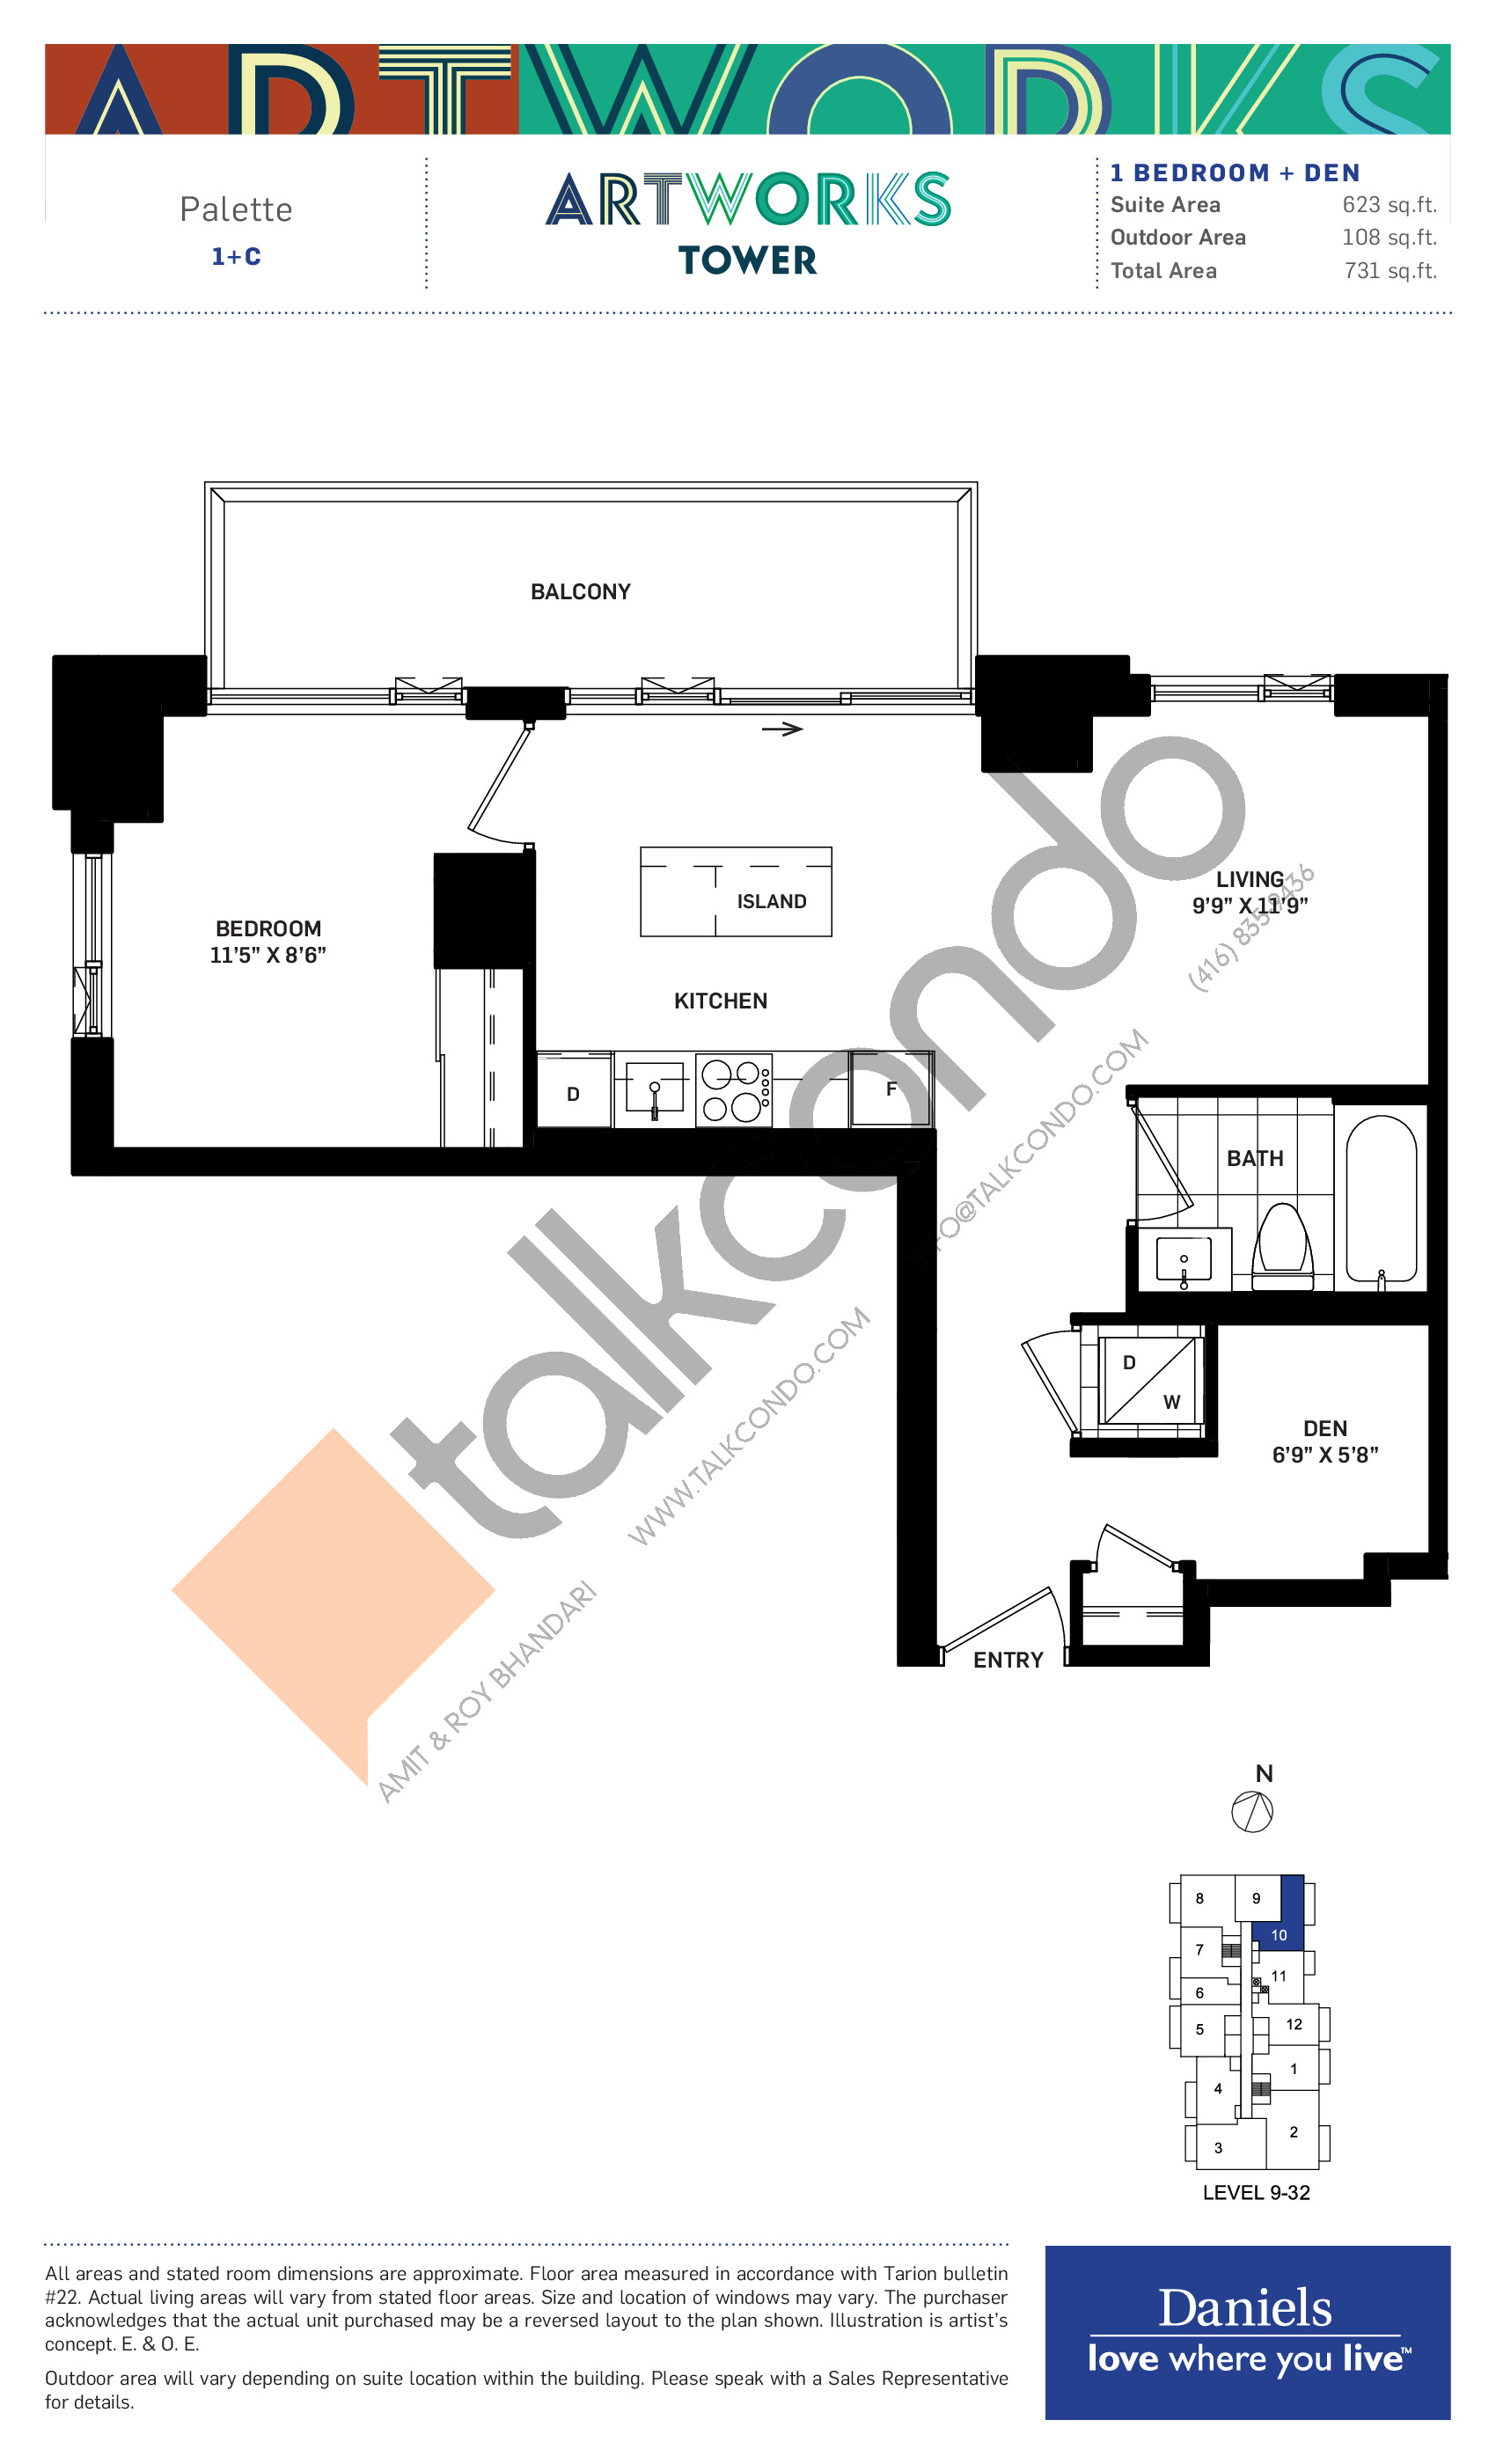 Palette Floor Plan at Artworks Tower Condos - 623 sq.ft